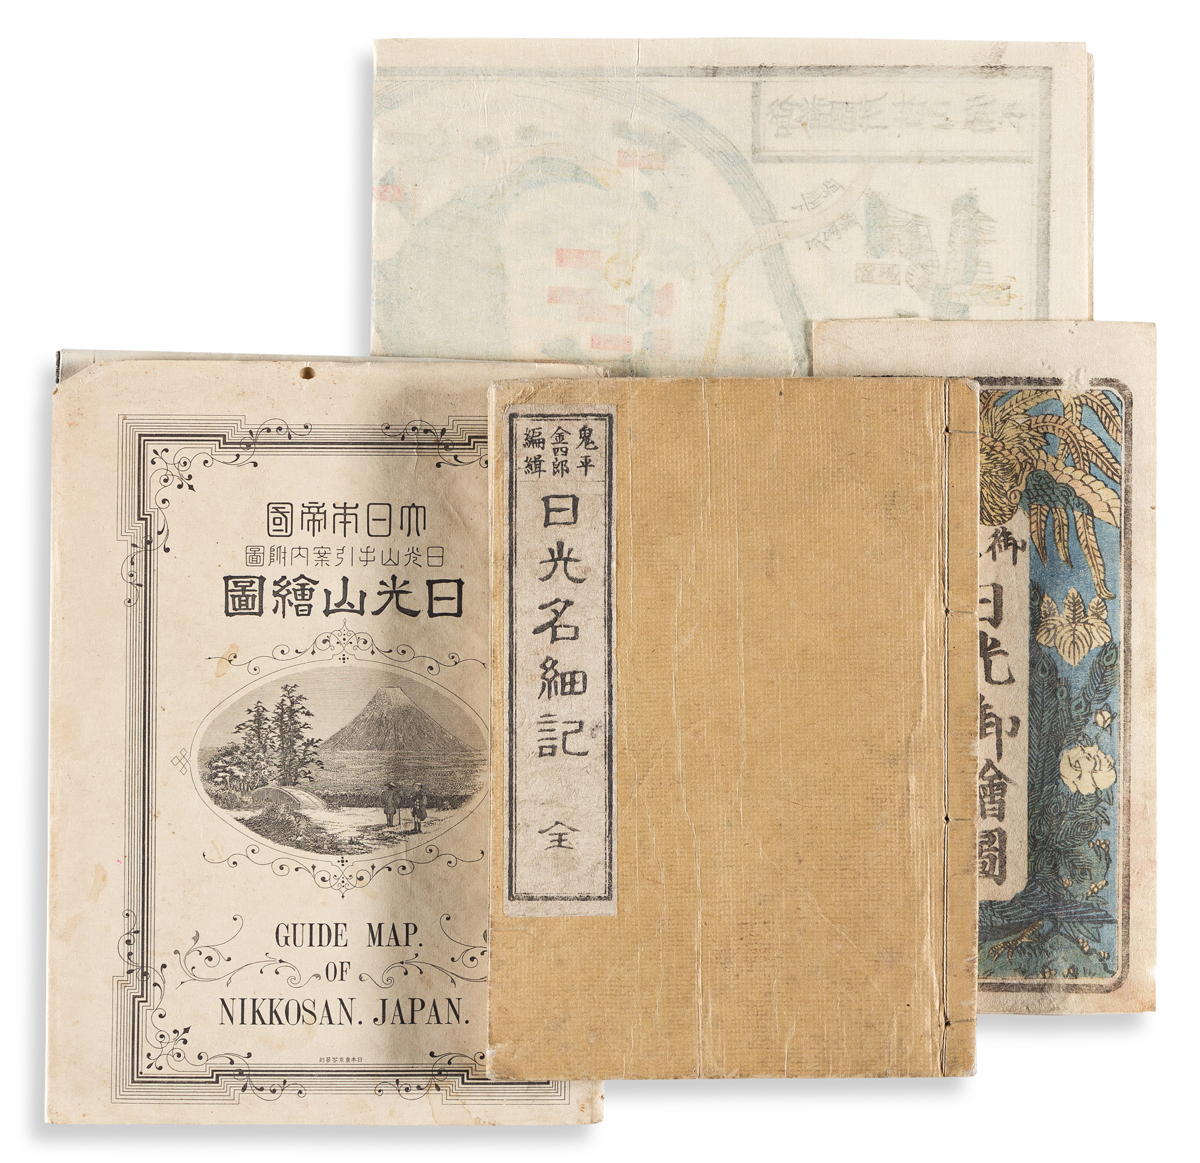 (JAPAN -- NIKKO.) Group of 3 nineteenth-century tourist guides to the mountain resort town north of Tokyo.